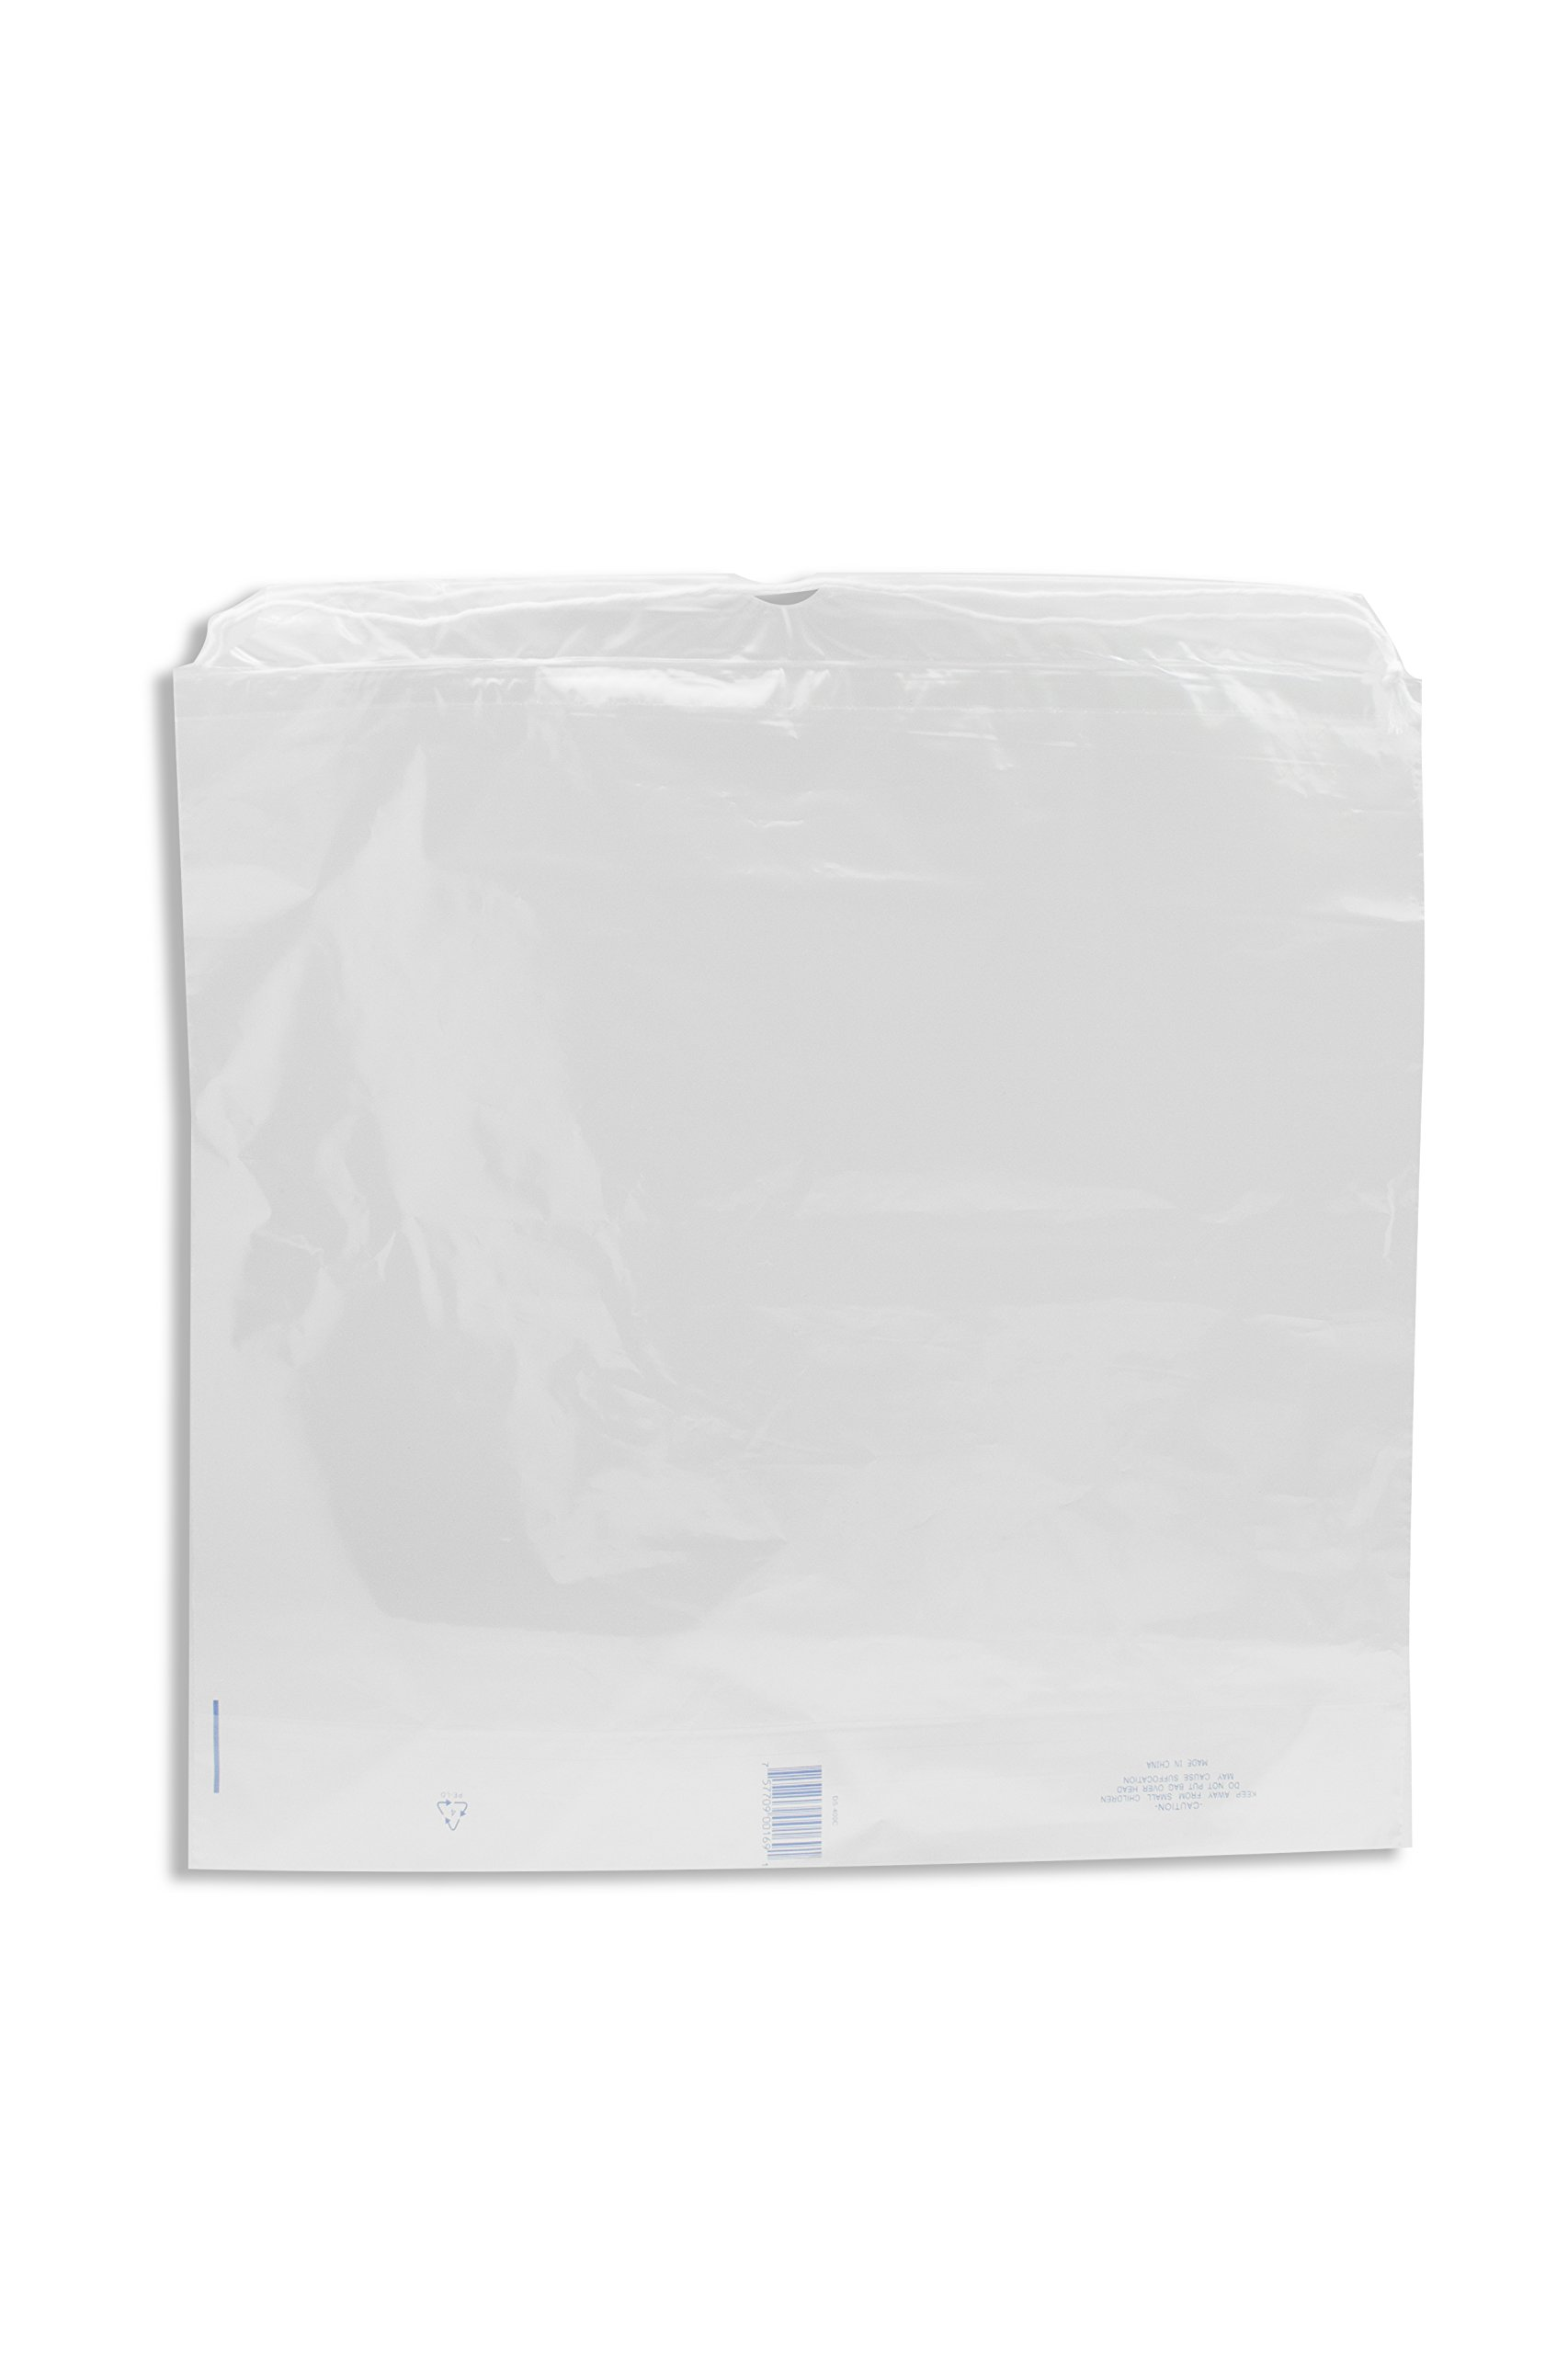 Dukal DS500C Dawn Mist Drawstring Patient Belonging Bag, 1.5 mil Thick, 7'' Gusset, 18'' W x 20.5'' L, Clear (Pack of 500) by Dukal